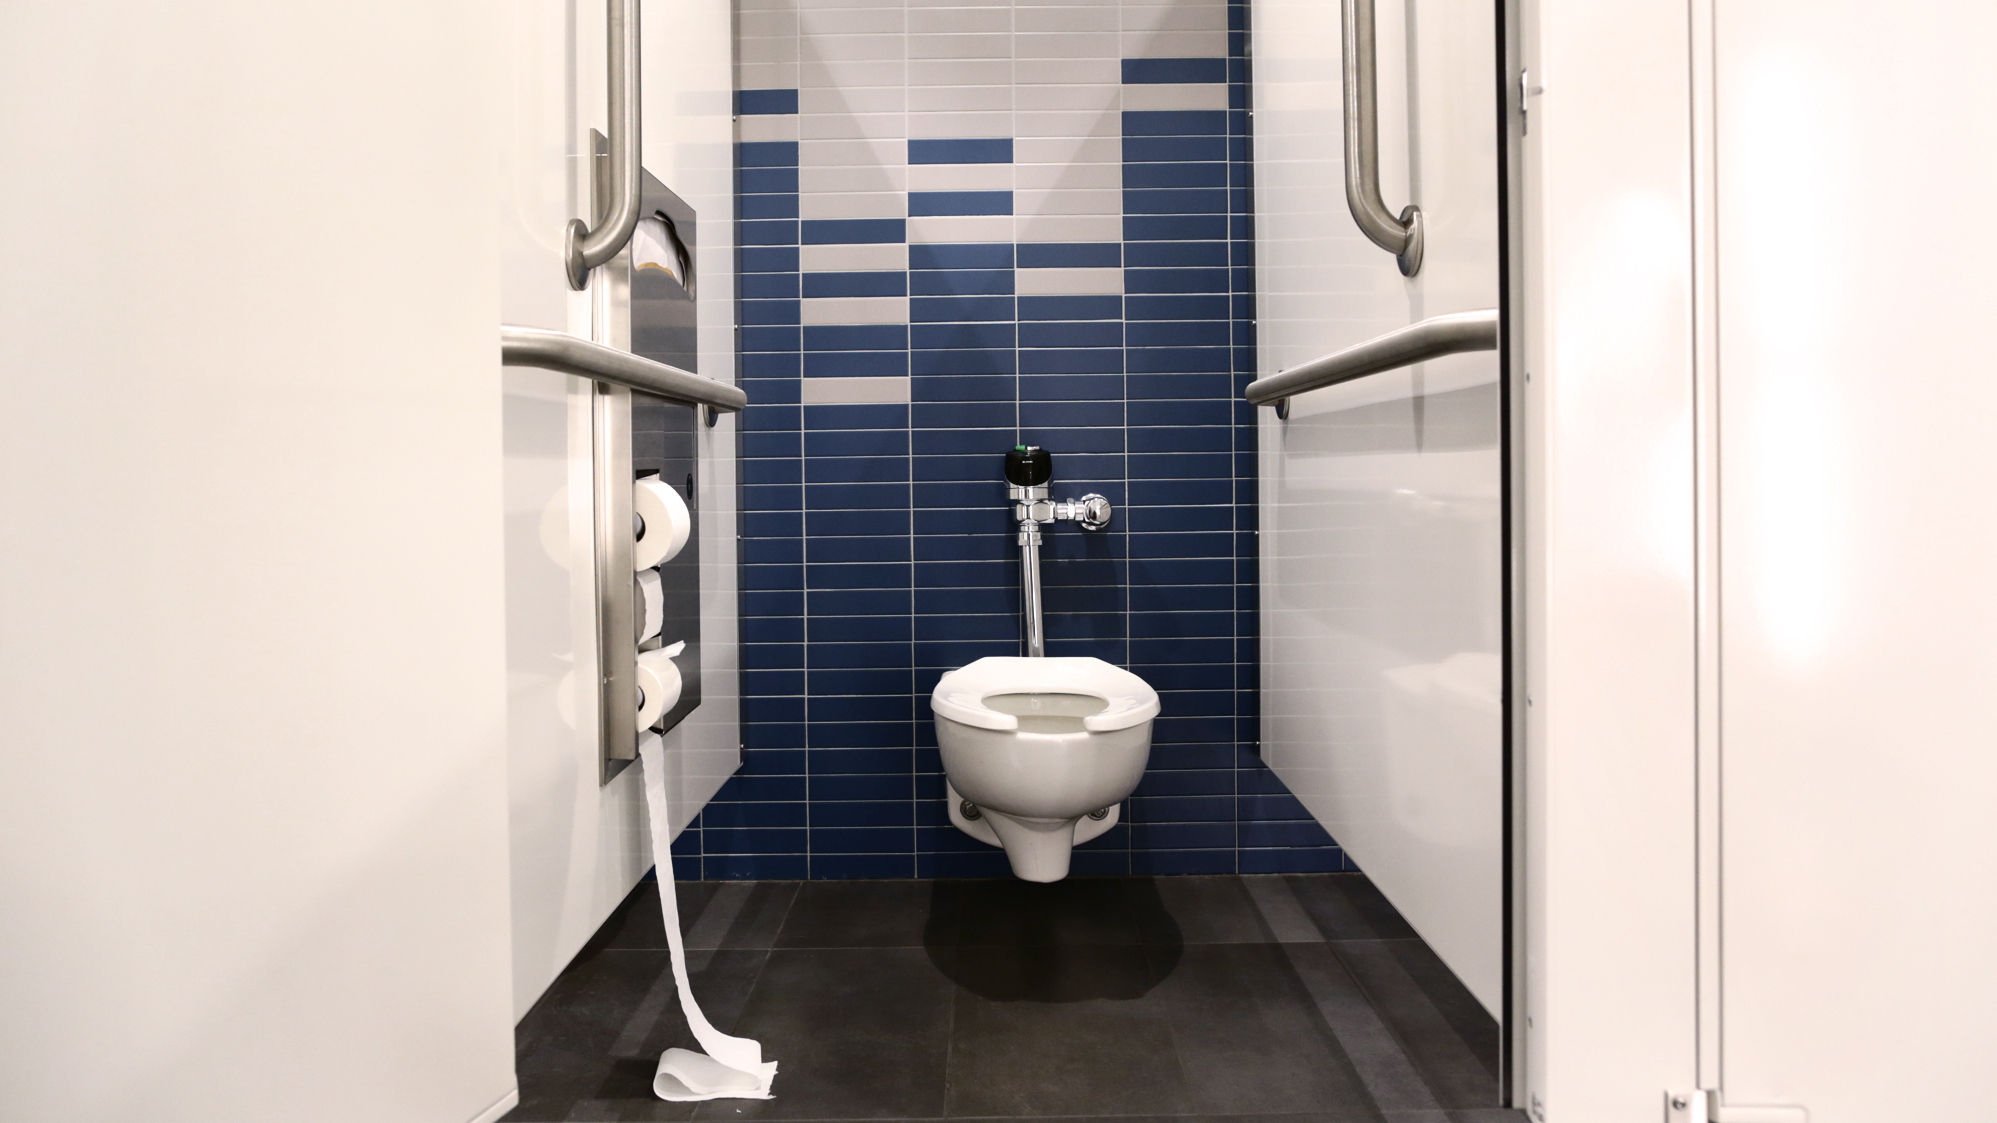 What Microbes Lurked In The Last Public Restroom You Used?